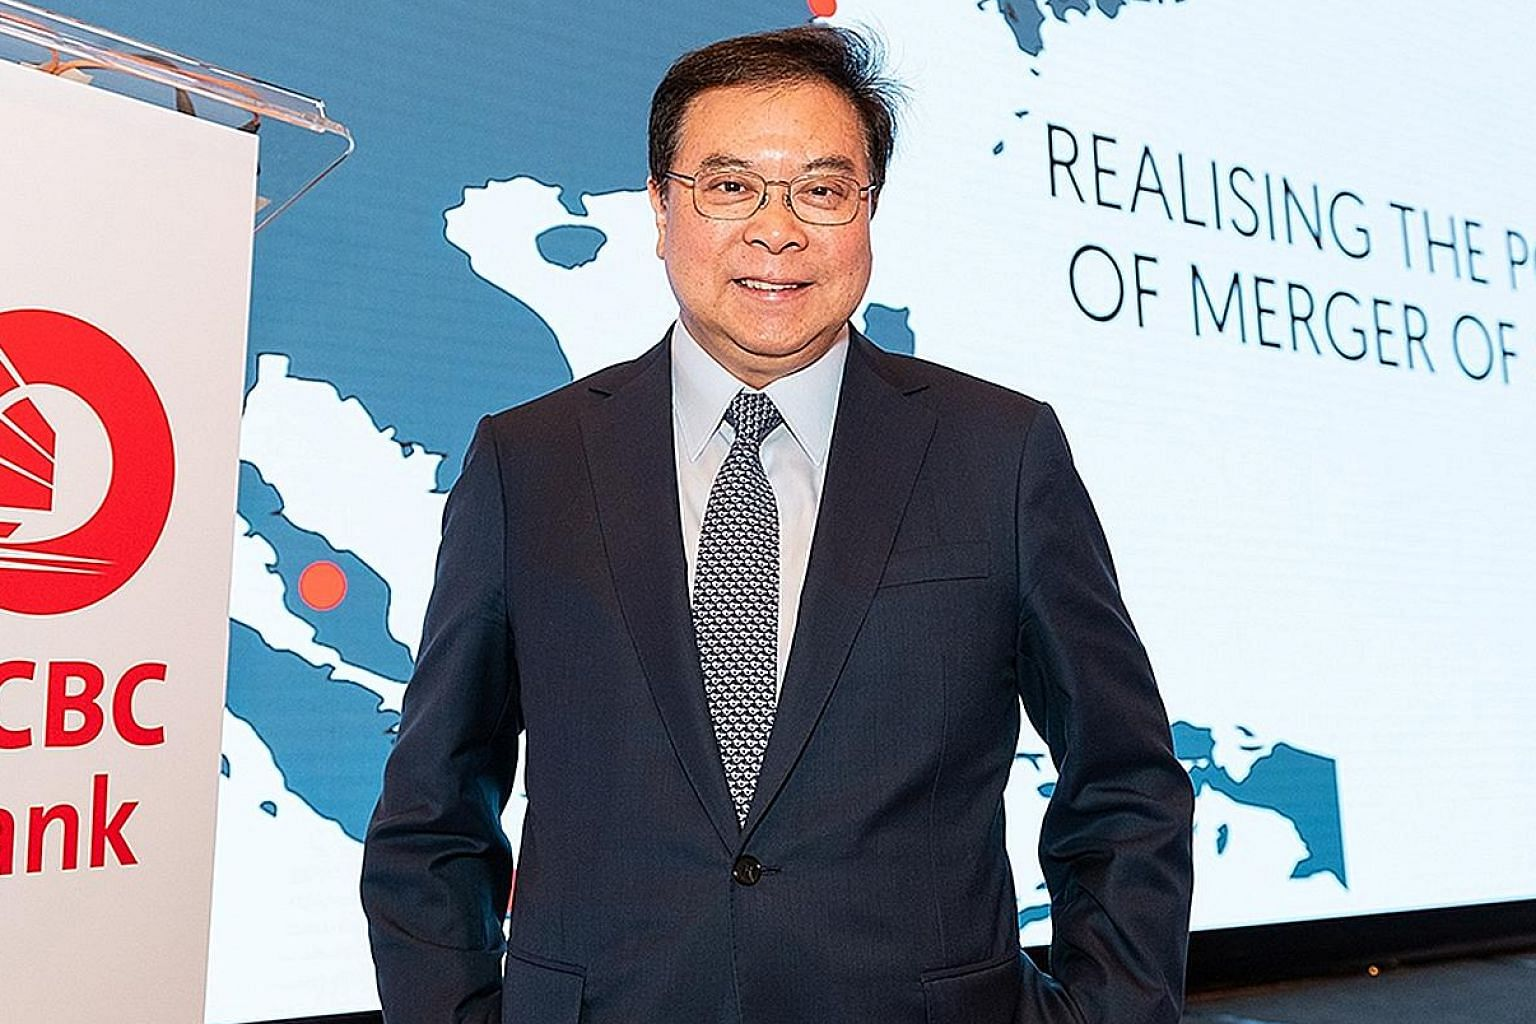 """OCBC Bank CEO Samuel Tsien signalled that he favours internal candidates over external ones to succeed him when the time comes. """"We have internal candidates... who are able to take over the bank in the event of a need,"""" he said."""